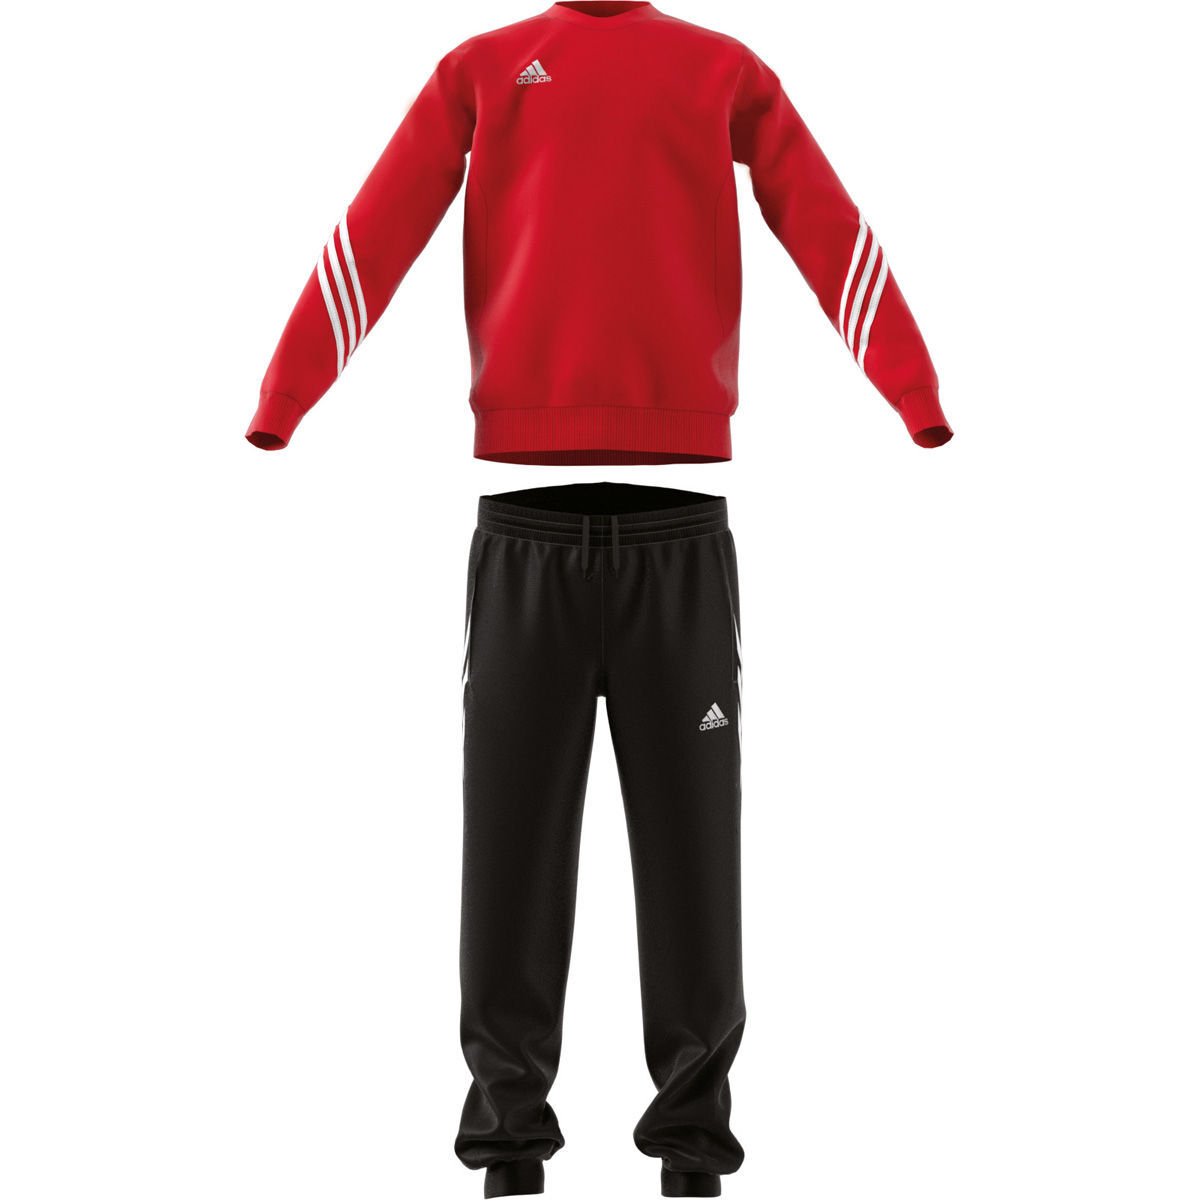 adidas jungen trainingsanzug sereno 14 karstadt online shop. Black Bedroom Furniture Sets. Home Design Ideas